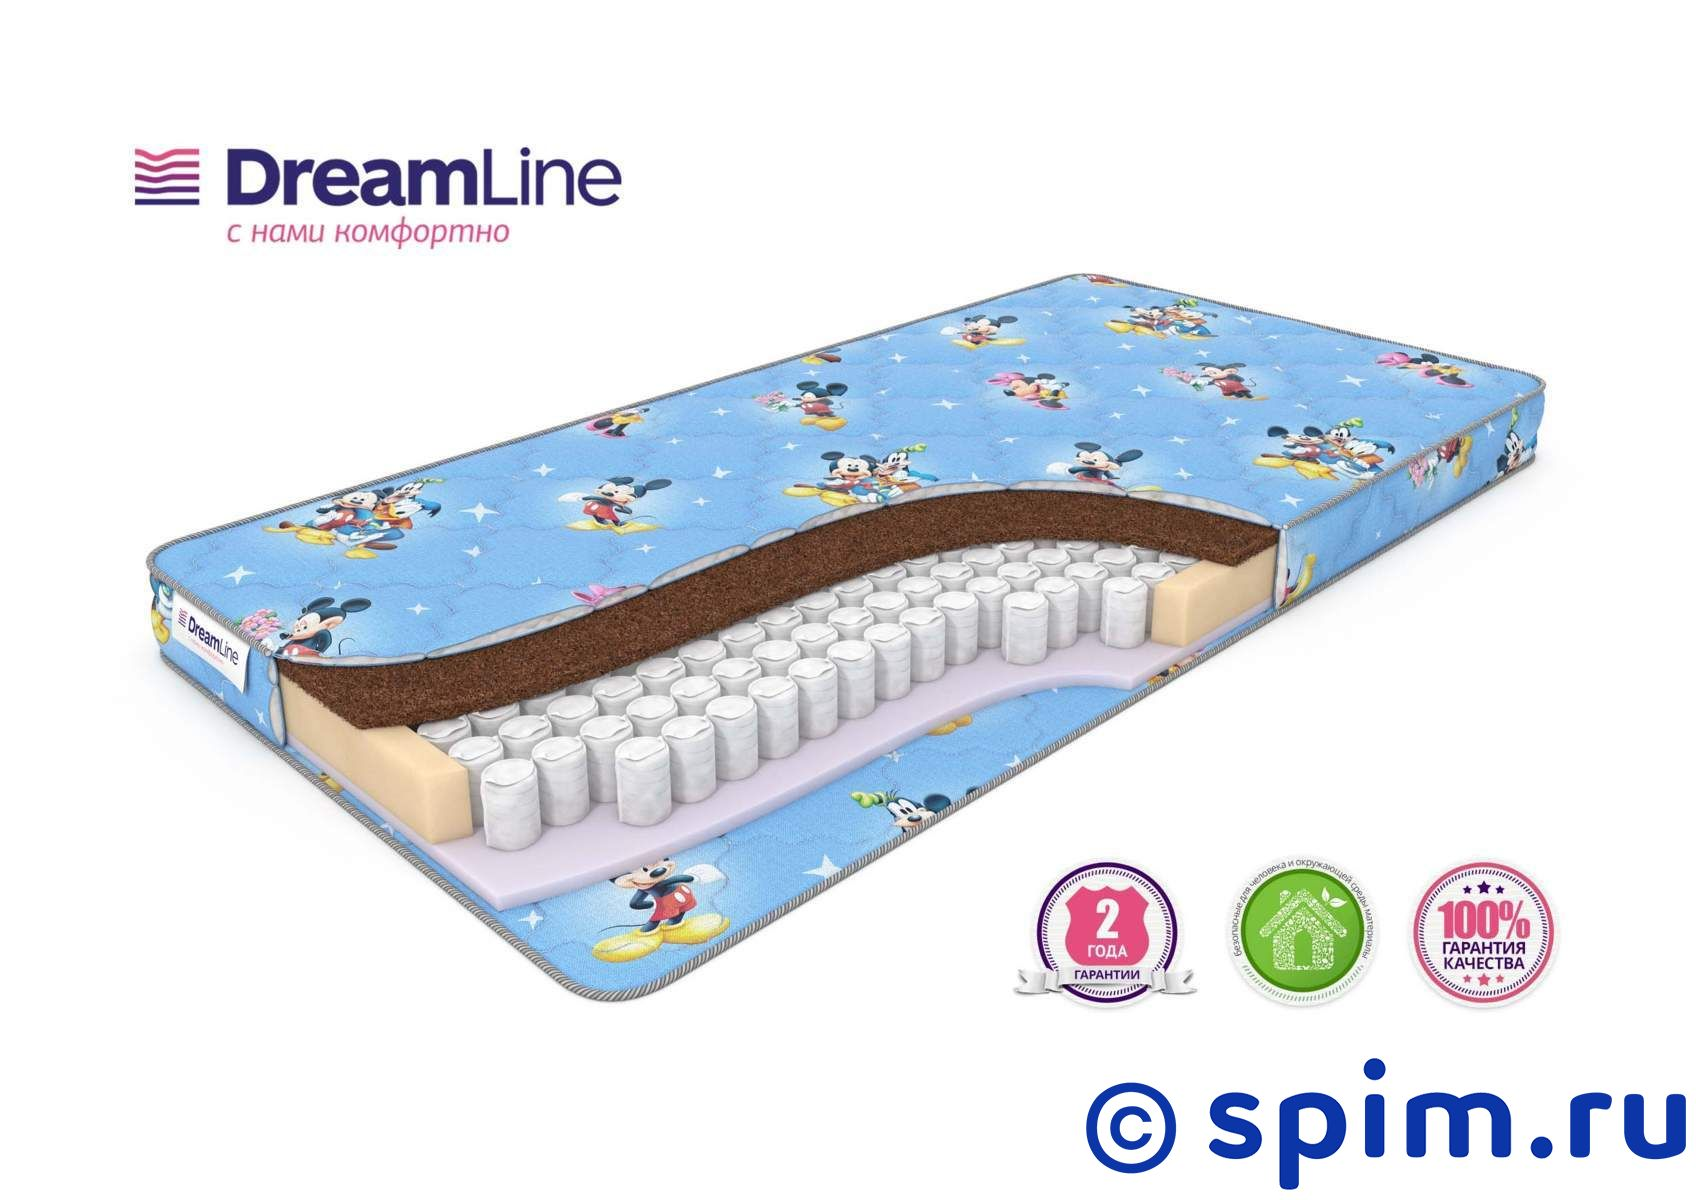 Детский матрас DreamLine Baby Sleep Dream Tfk 70х140 см матрас dreamline dream 3 tfk 150х195 см